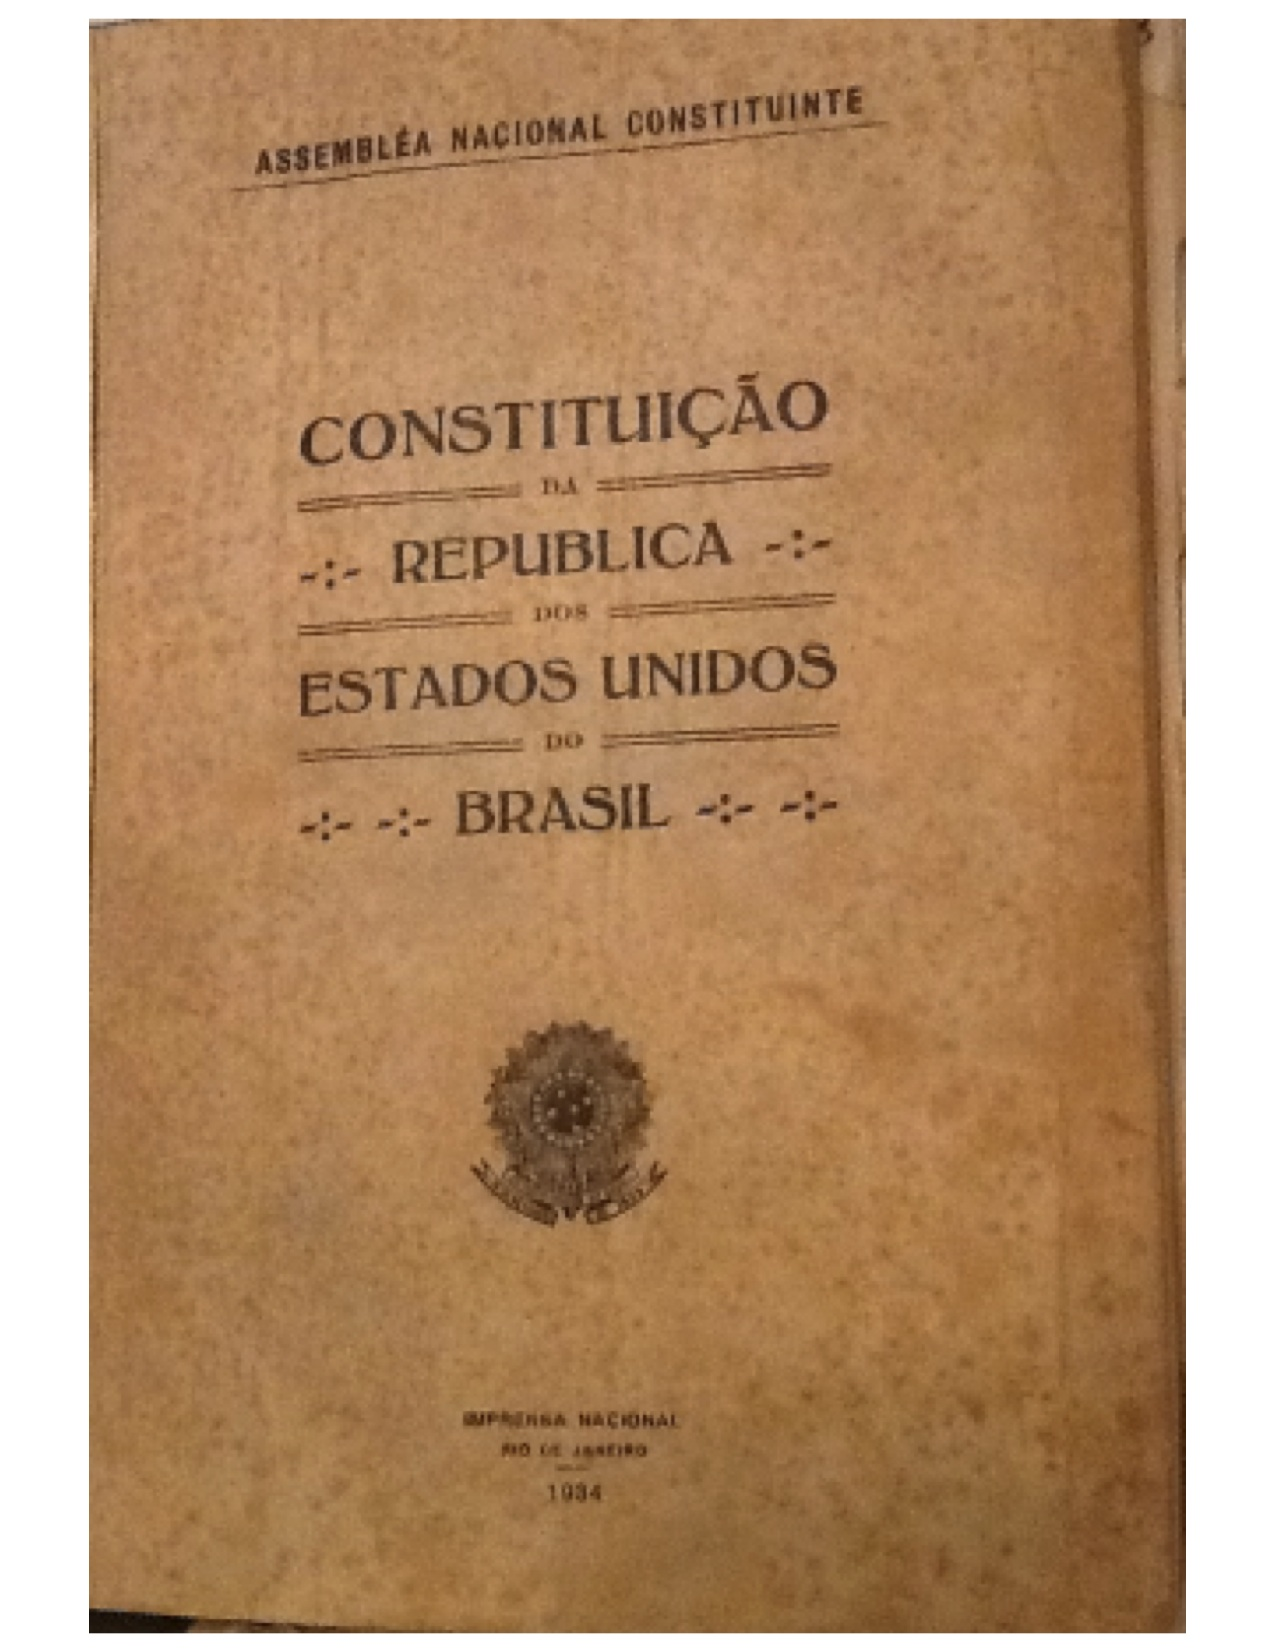 an introduction and an analysis of the mexican constitution Remember that the purpose of a critical analysis is not merely to inform, but also to evaluate the worth, utility, excellence, distinction, truth,.